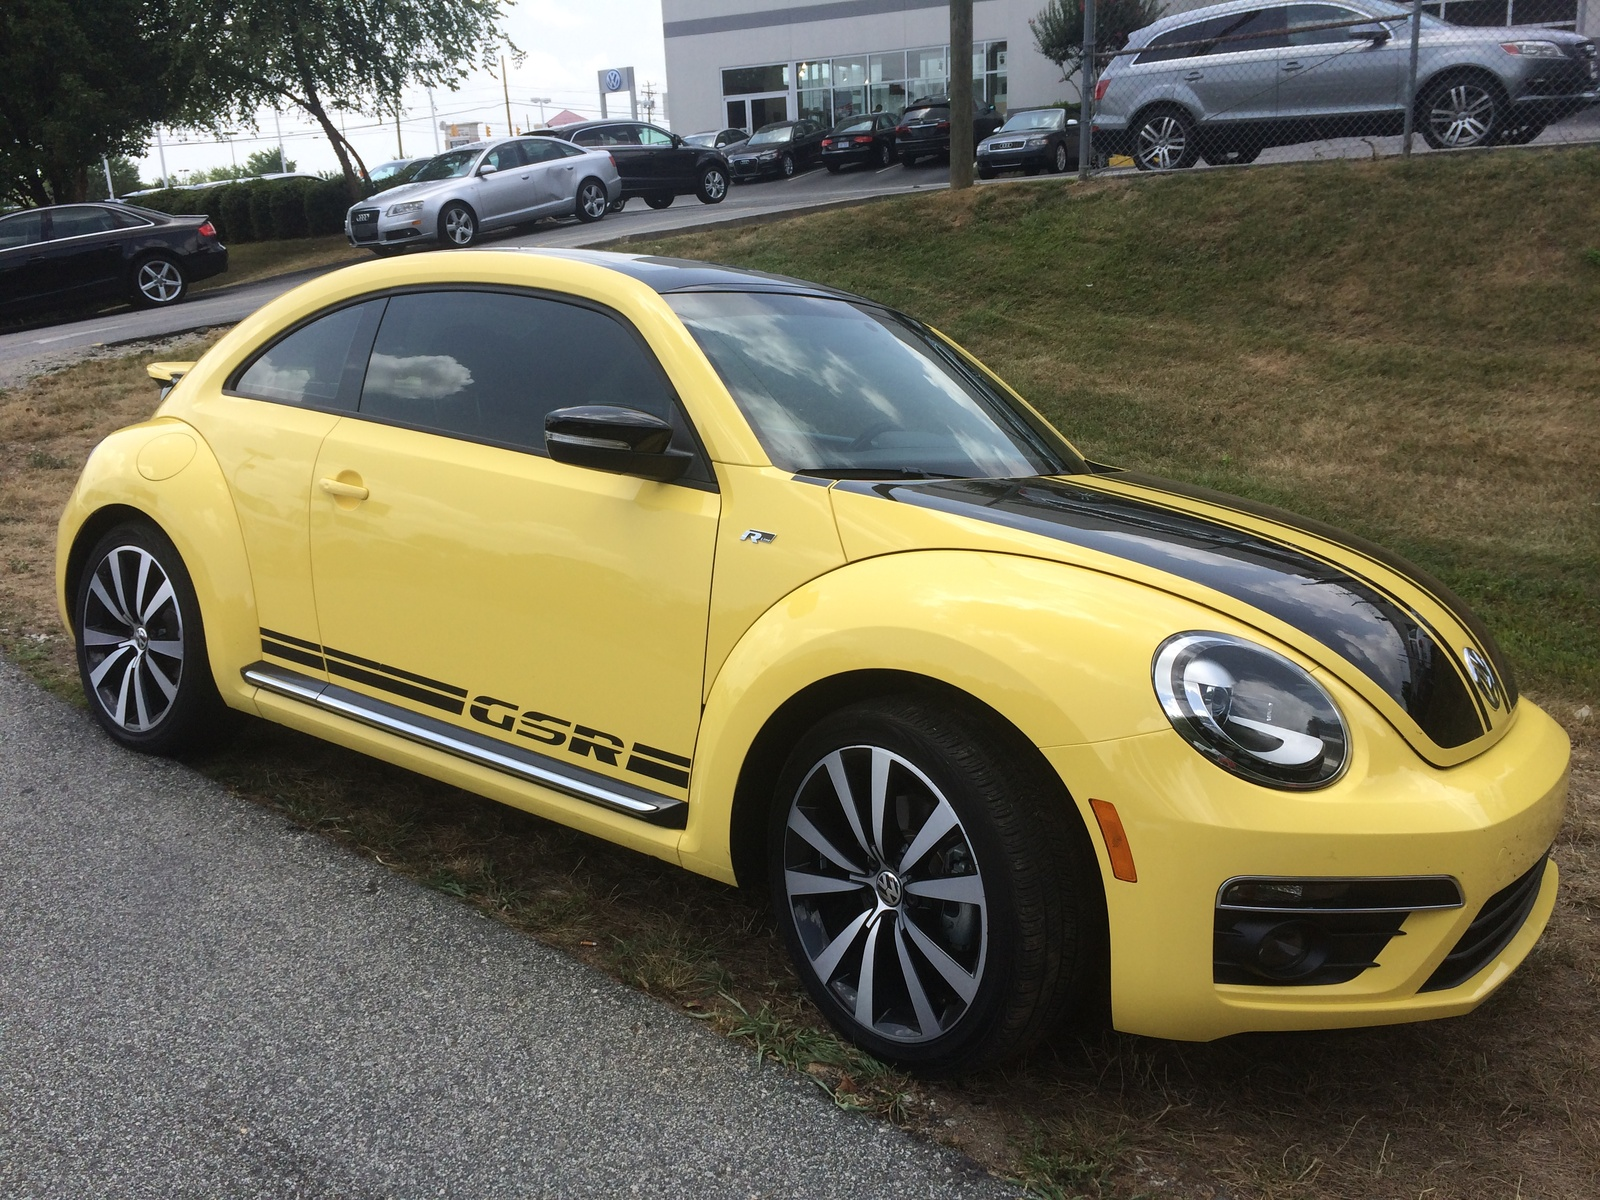 New 2015 Volkswagen Beetle For Sale Cargurus